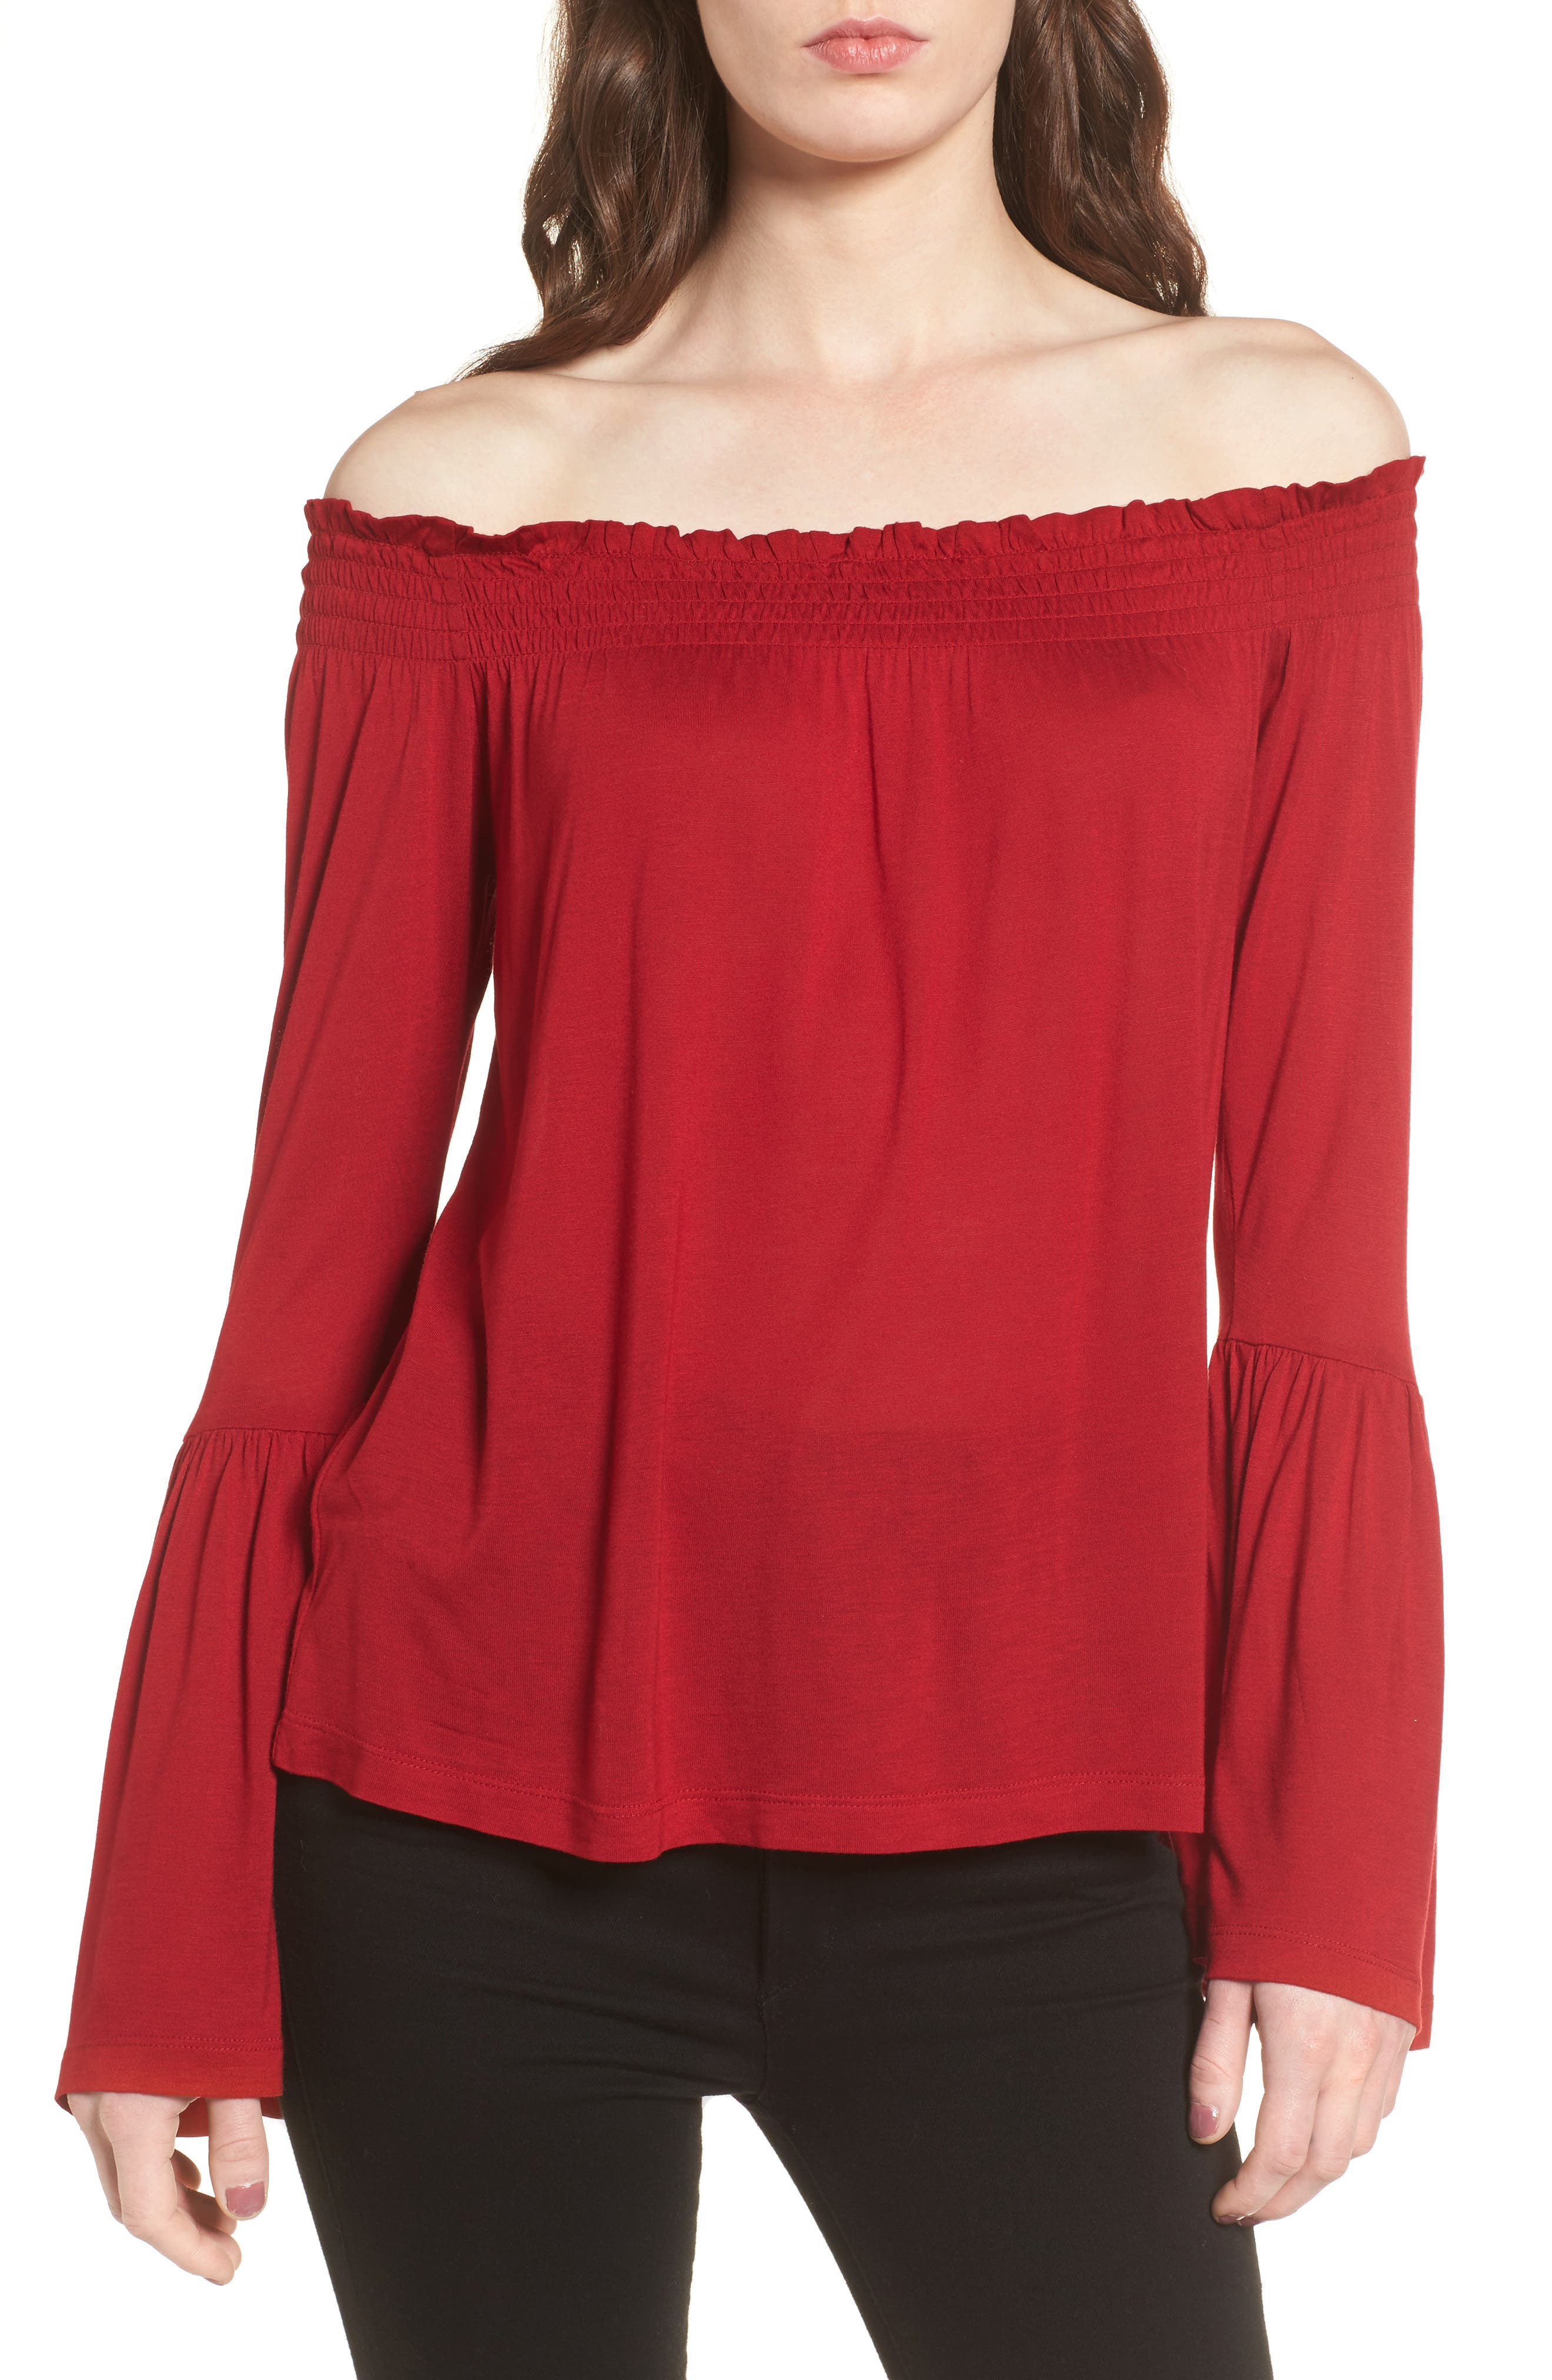 Luck Off the Shoulder Top,                             Main thumbnail 1, color,                             643